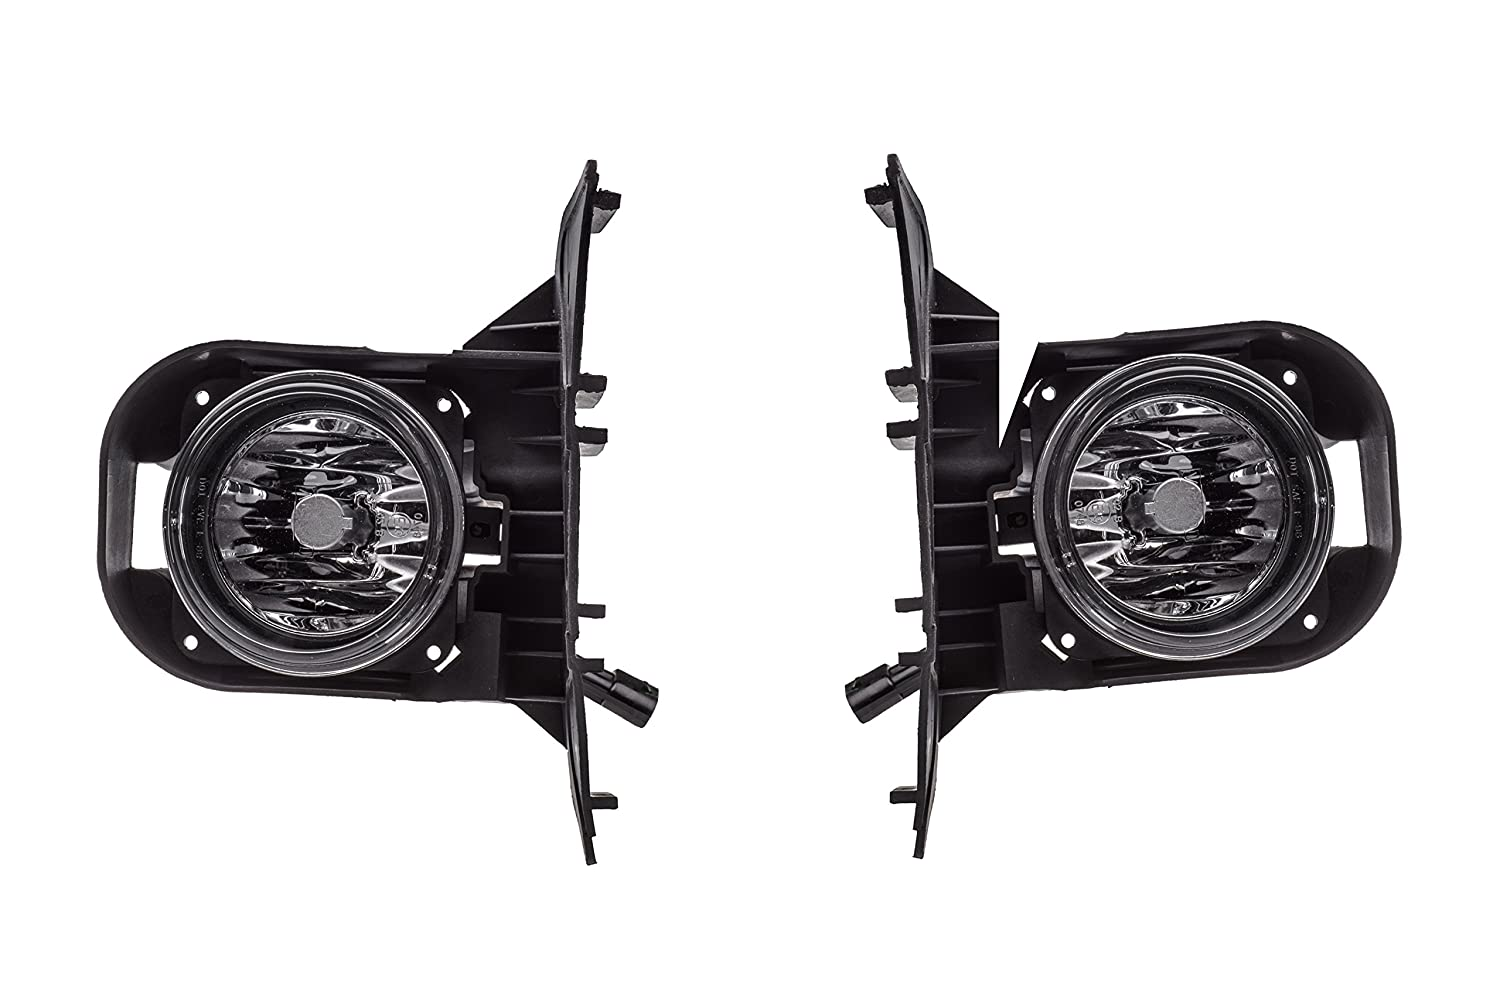 2000 2004 Ford F 150 Harley Davidson Fog Lights Lamps Right Left Pair Oem New Automotive